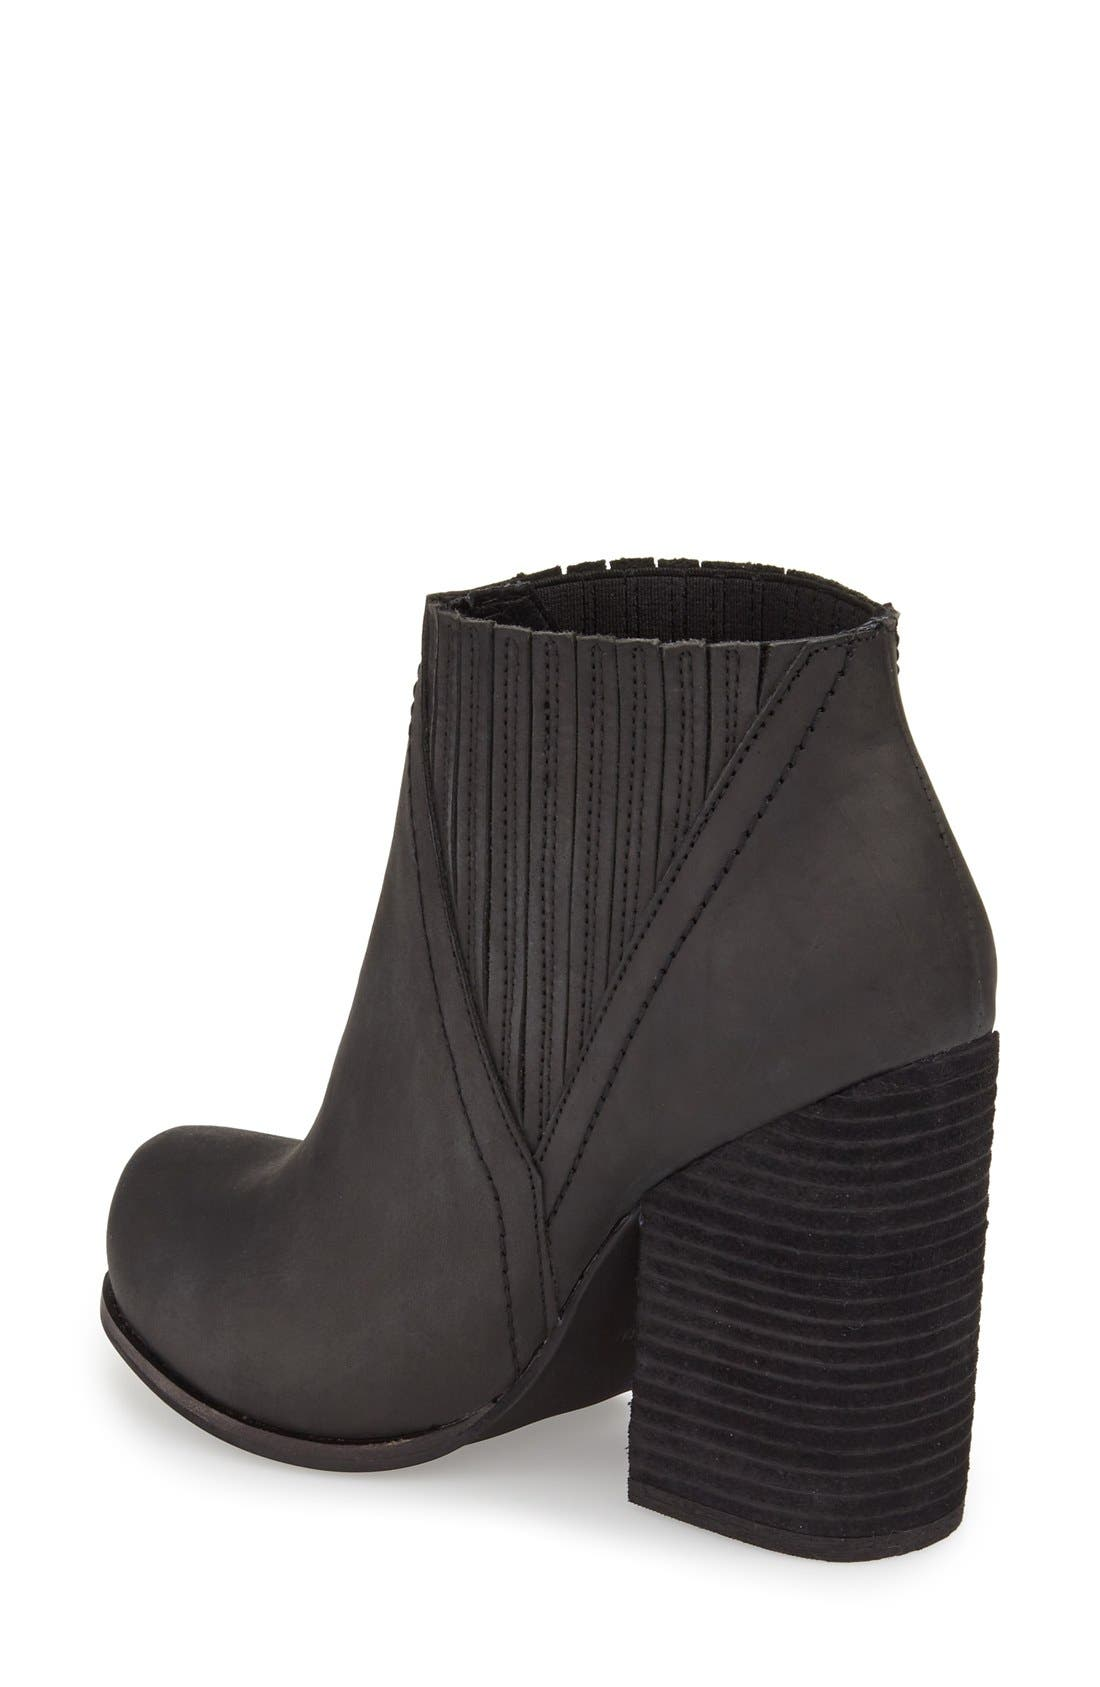 Alternate Image 2  - Jeffrey Campbell 'Gershon' Block Heel Bootie (Women)